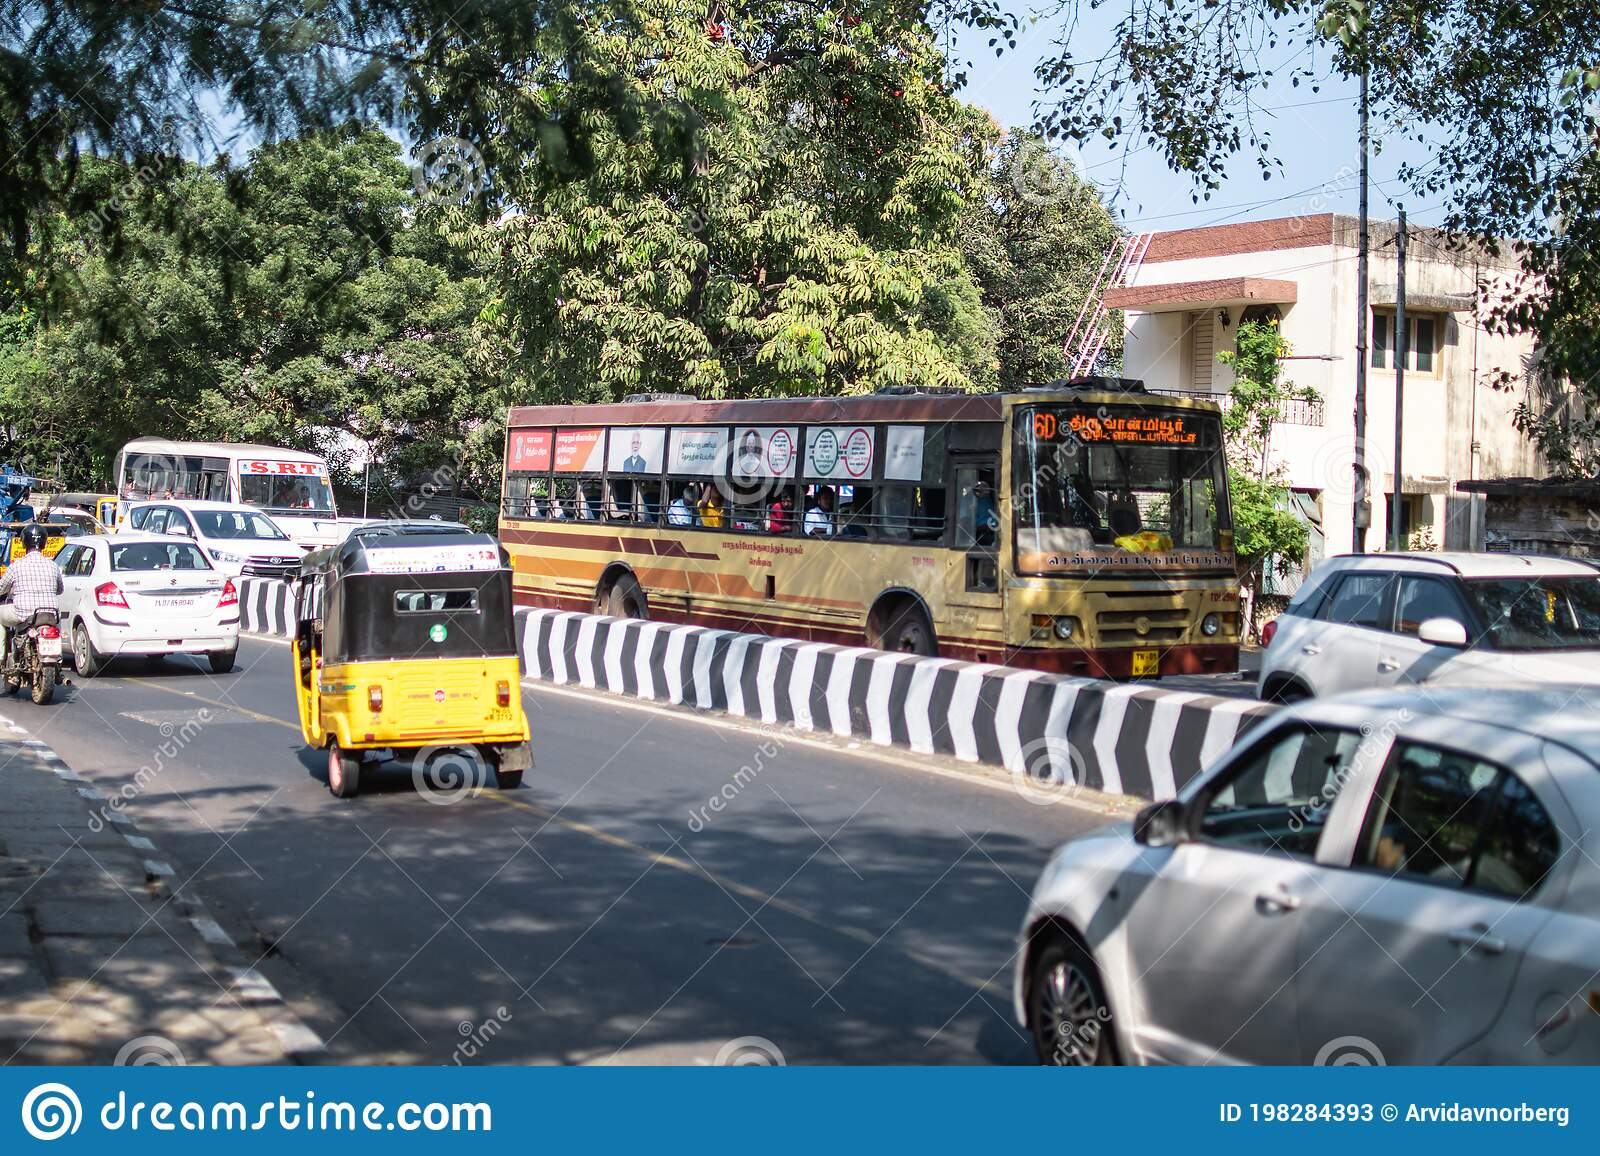 Everyday Traffic On An Asphalt Road In Chennai Tamil Nadu India Editorial Stock Photo Image Of Building Business 198284393